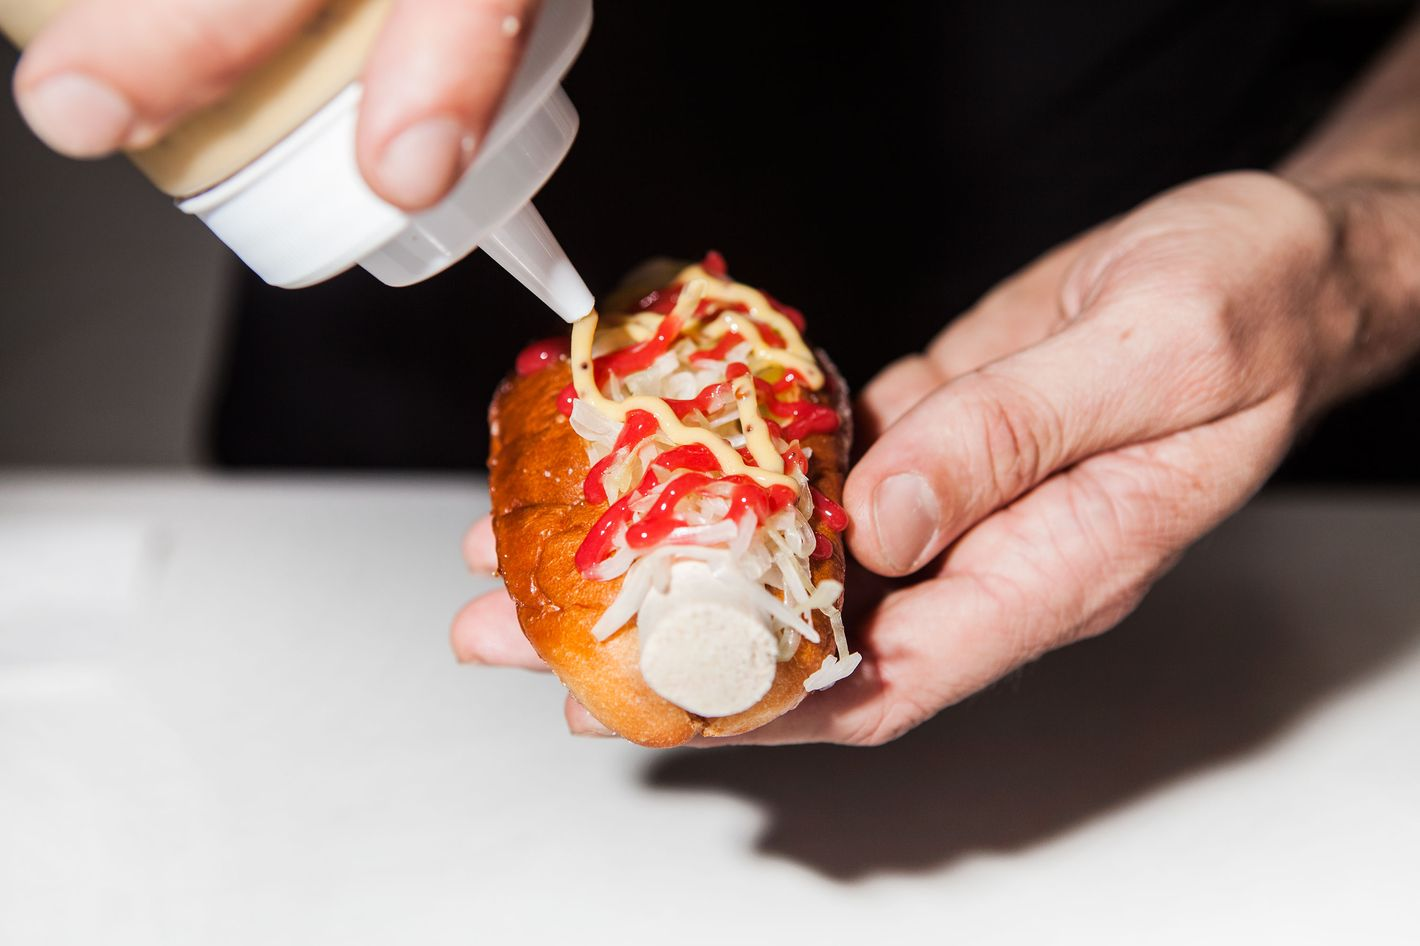 Two Famed Chefs Have Introduced Hot-Dog Ice Cream